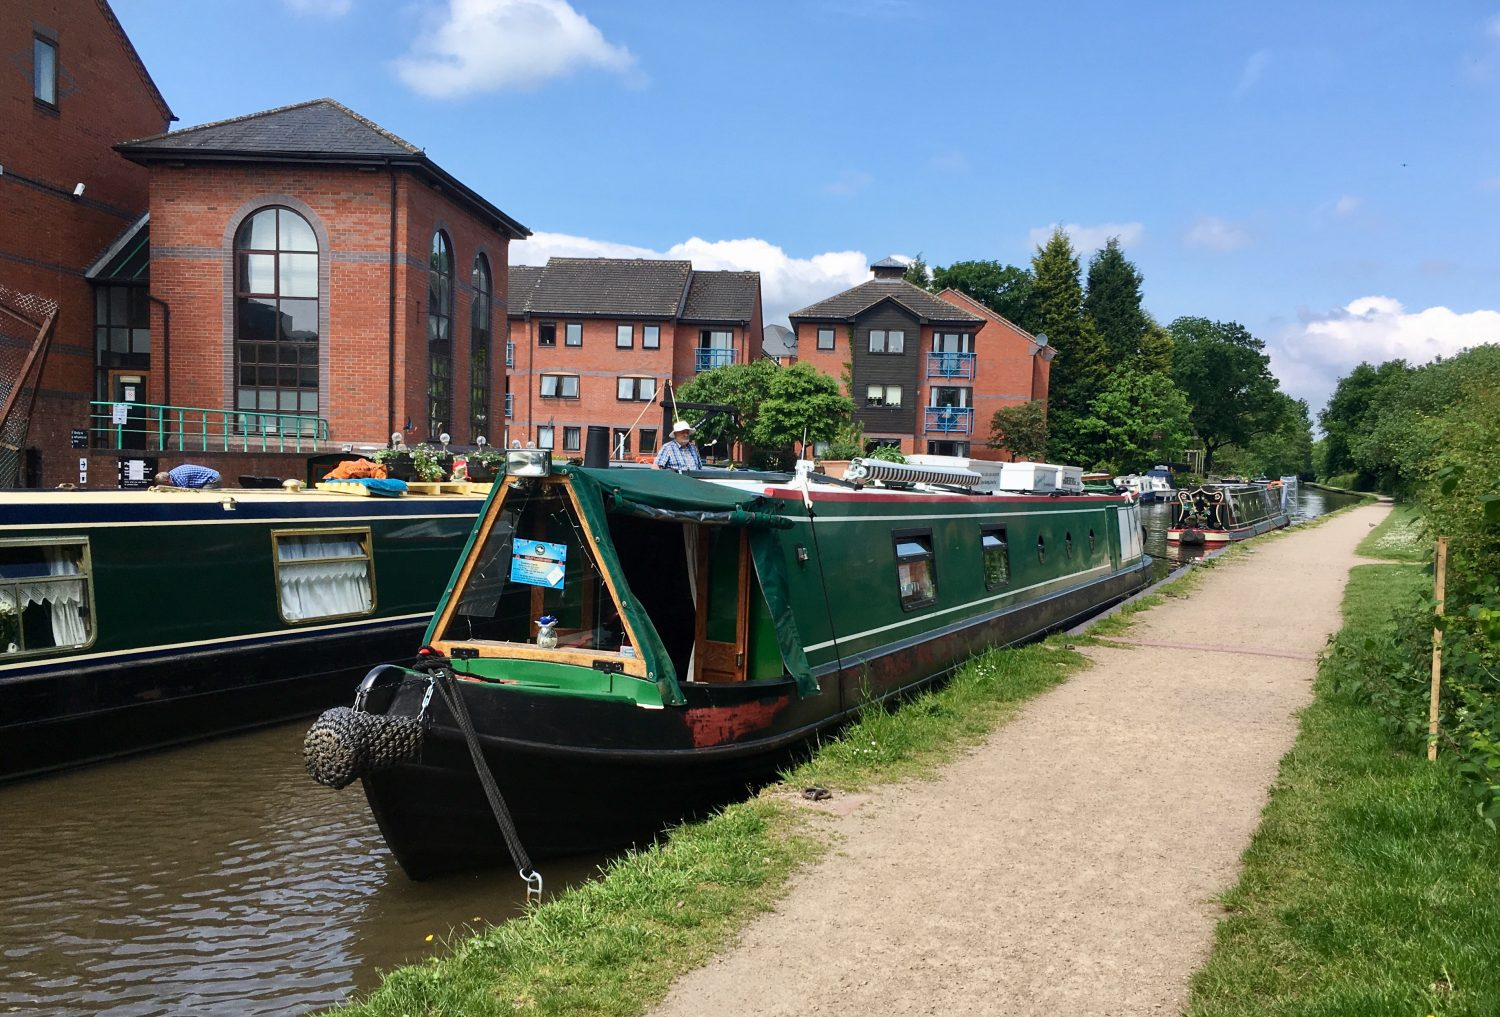 The Home Brew Boat at Fazeley